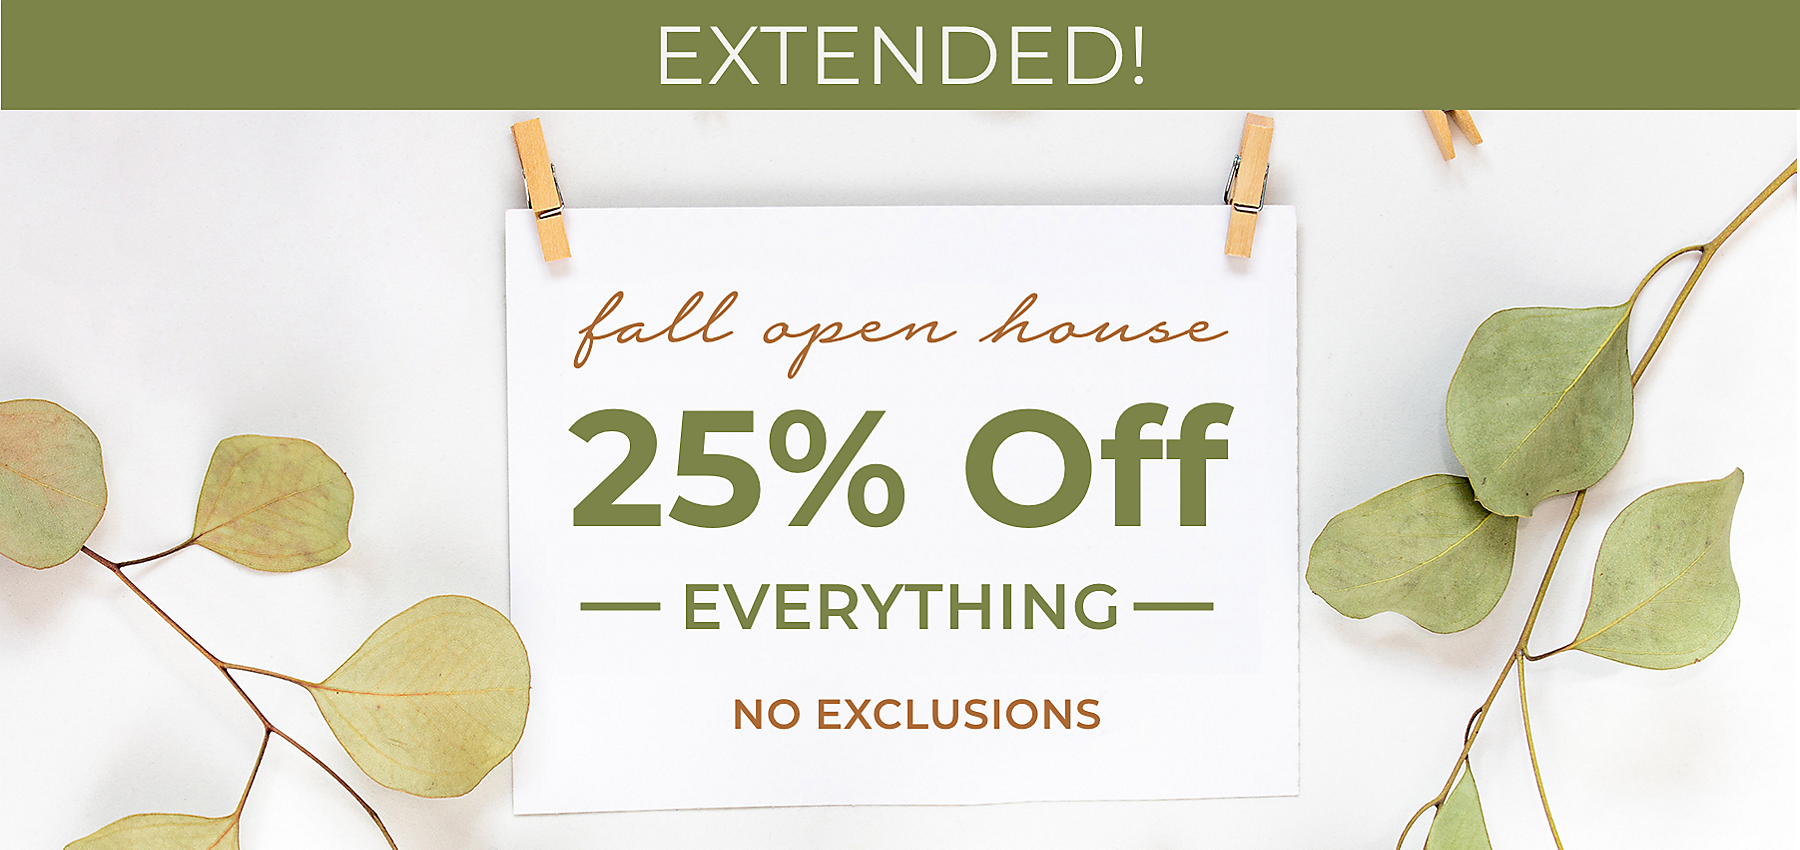 Extended - Fall Open House Sale